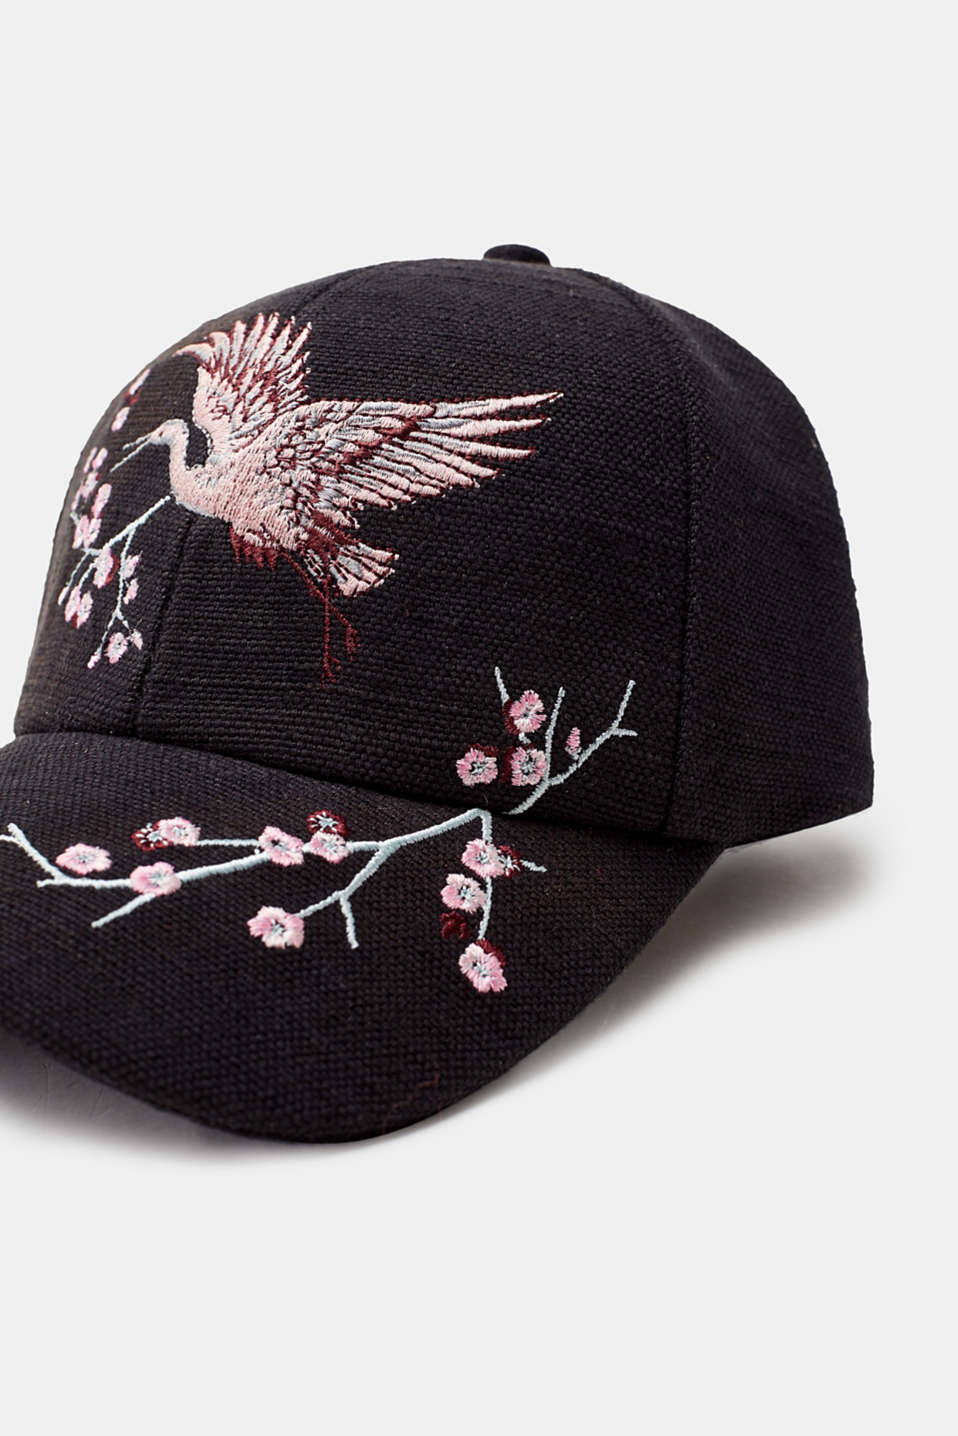 Baseball cap with bird embroidery